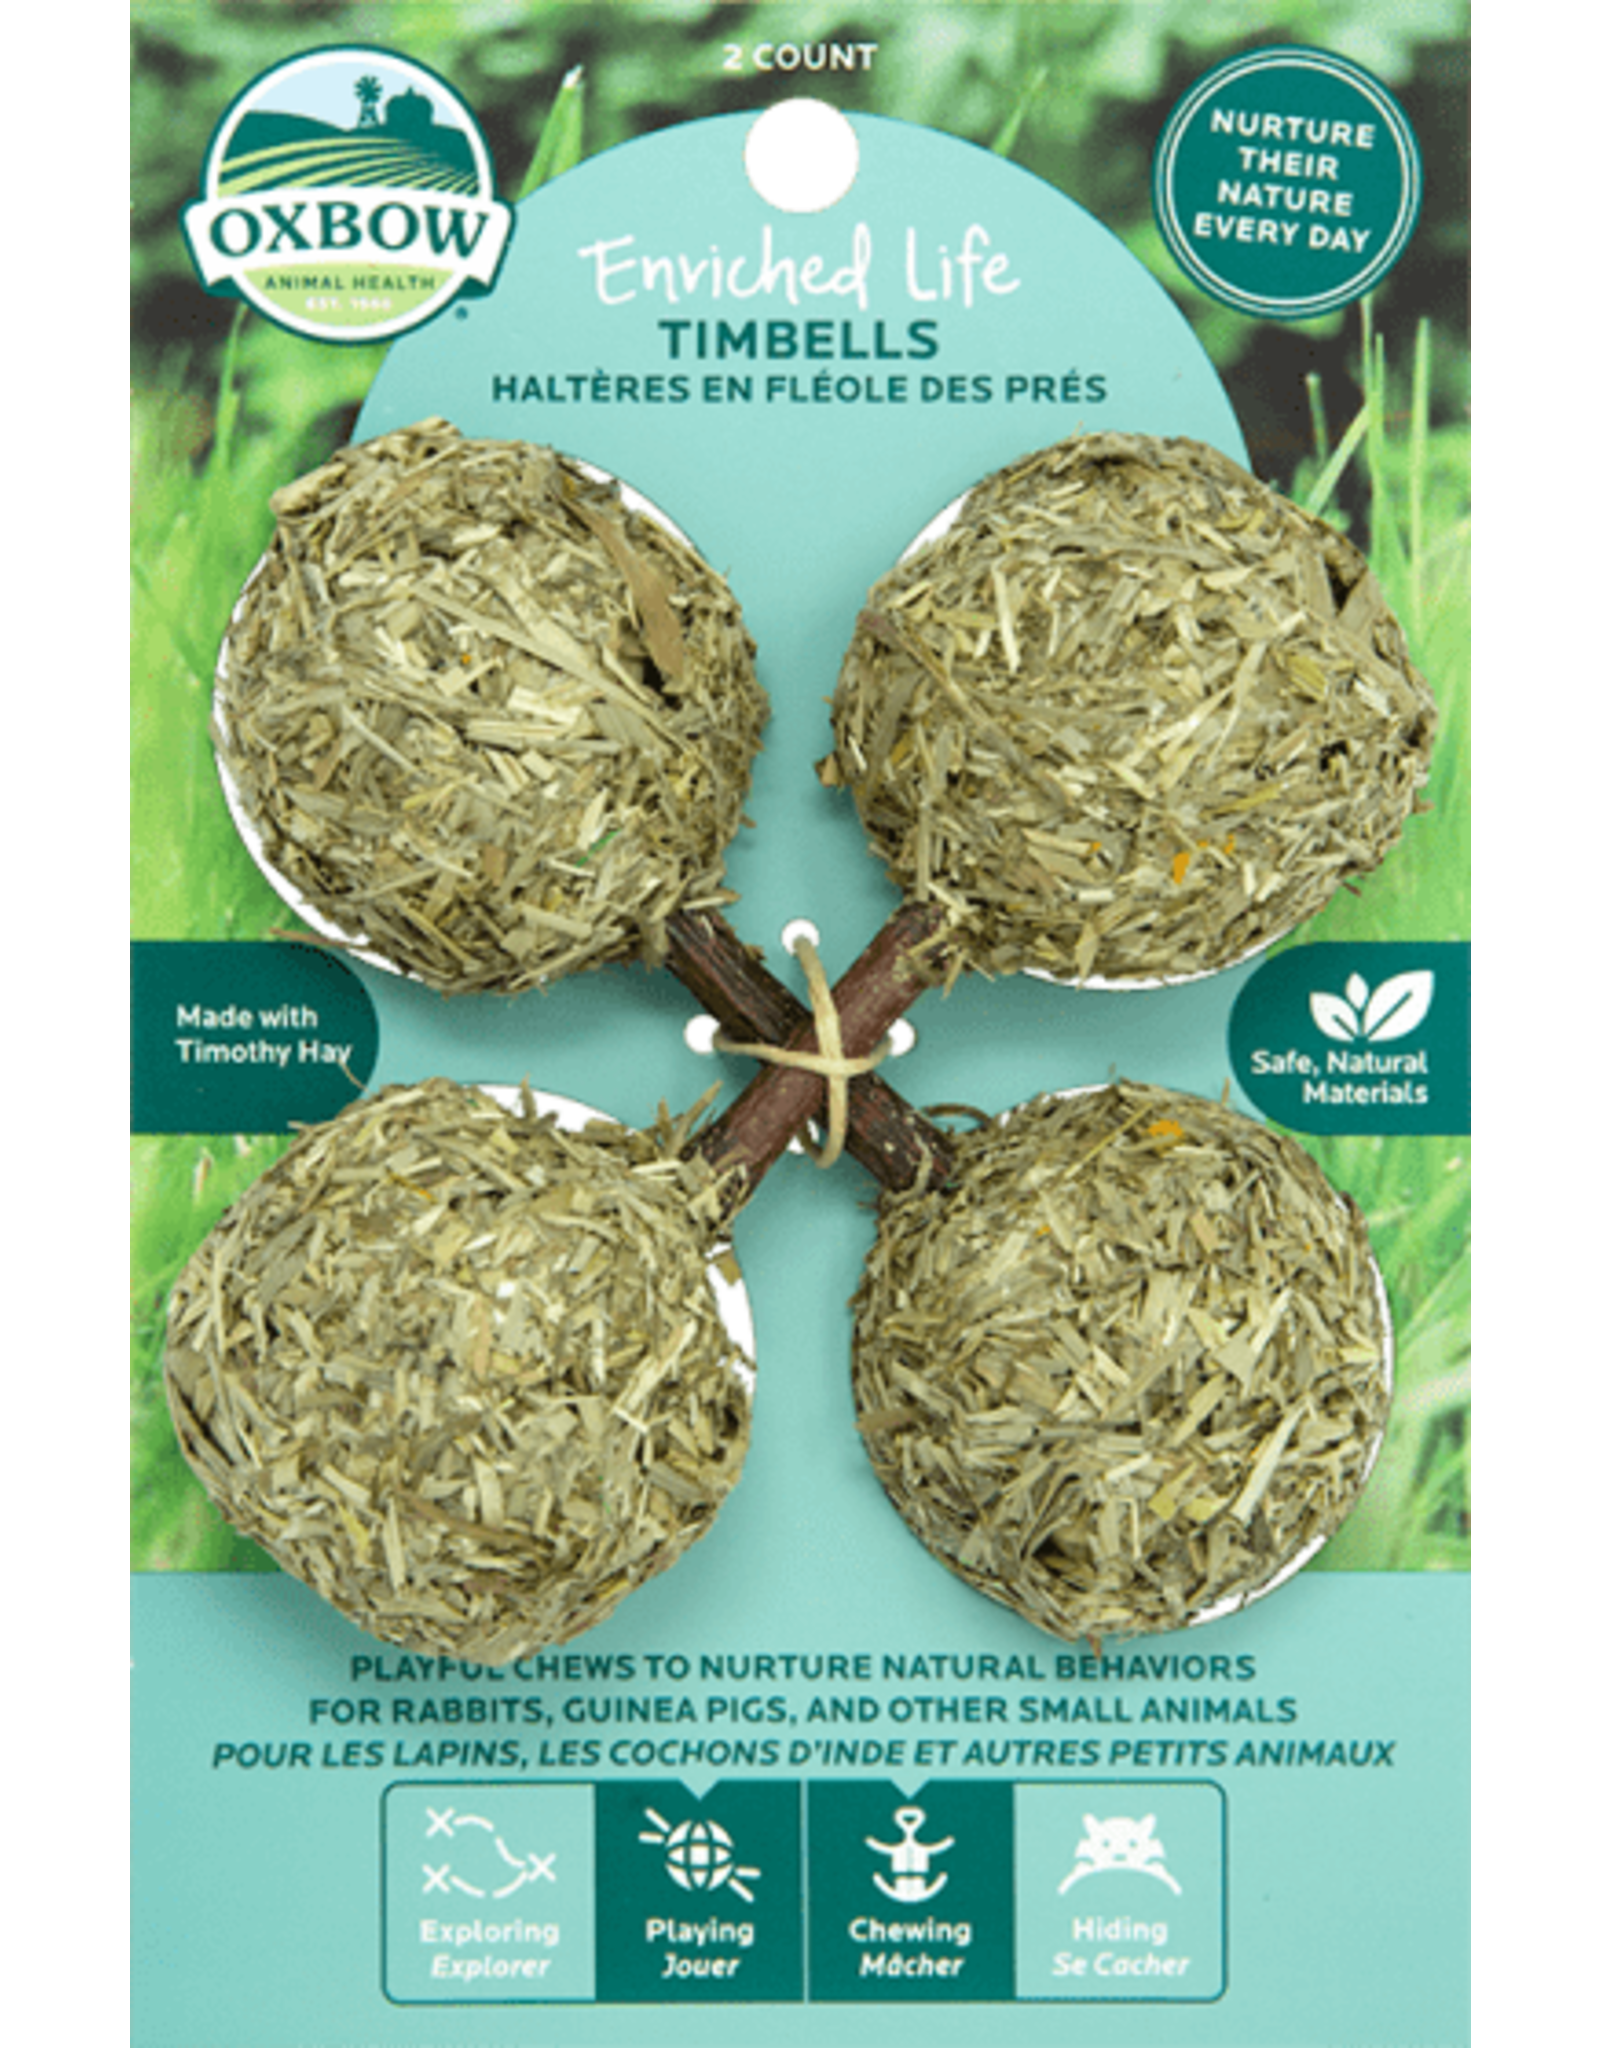 Oxbow OXBOW Enriched Life Hay Timbells 2 Pack Natural Chews